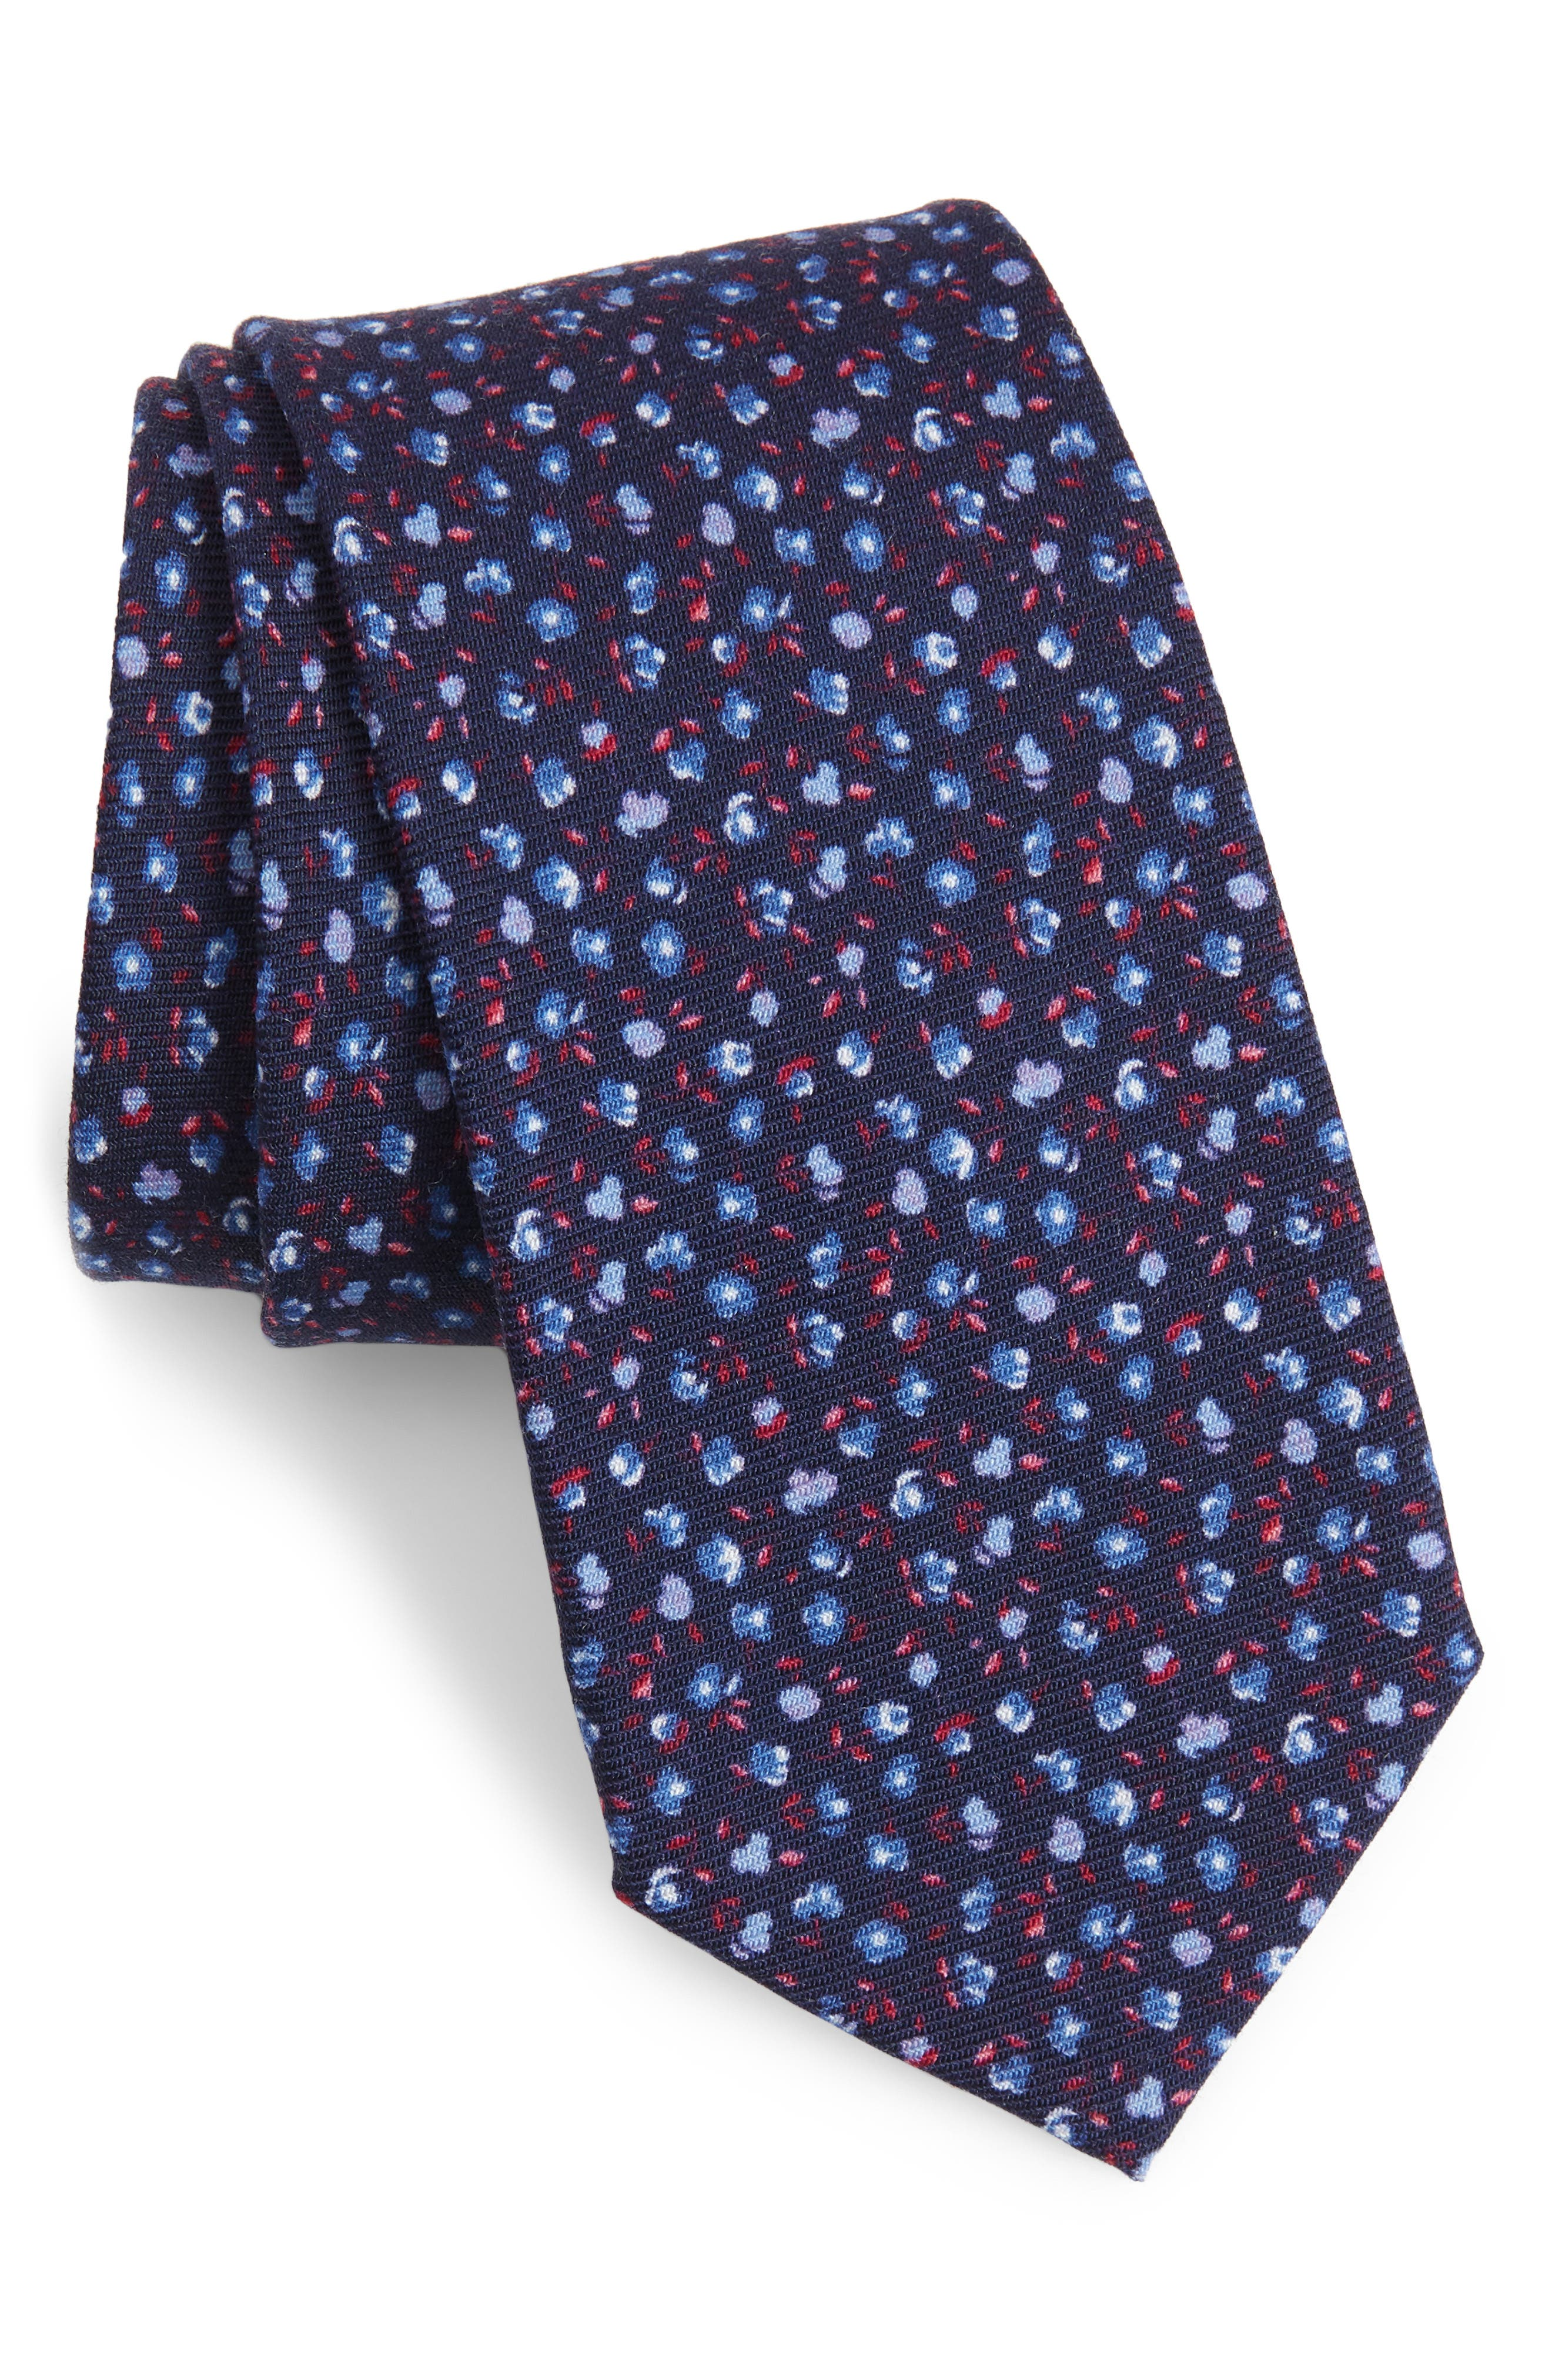 Villapool Floral Wool Tie,                         Main,                         color, 400